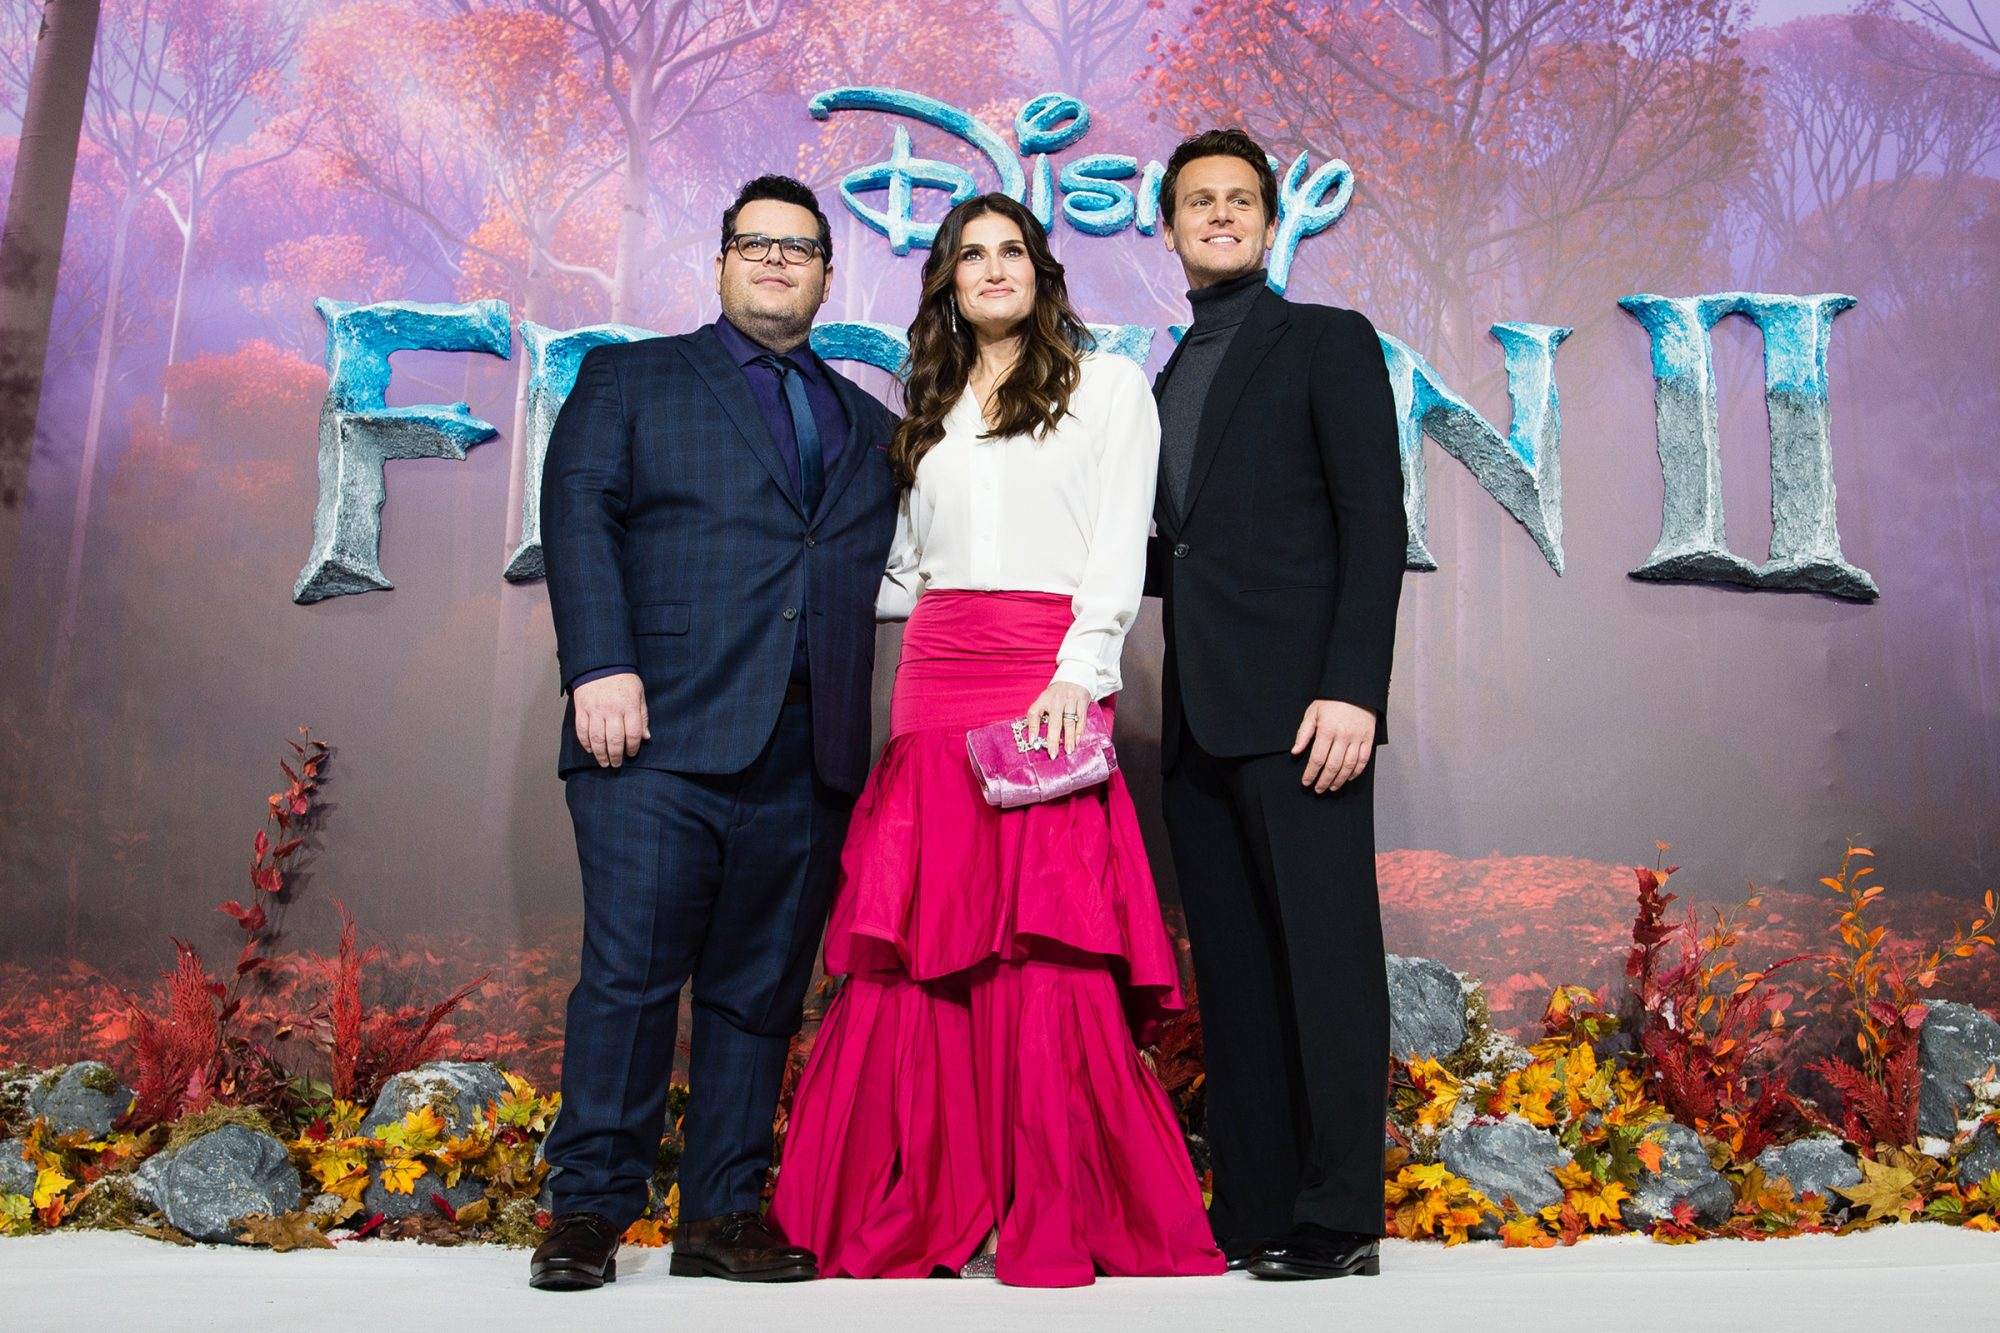 """Josh Gad, Idina Menzel and Jonathan Groff attend the """"Frozen 2"""" European premiere at BFI Southbank on November 17, 2019 in London, England"""